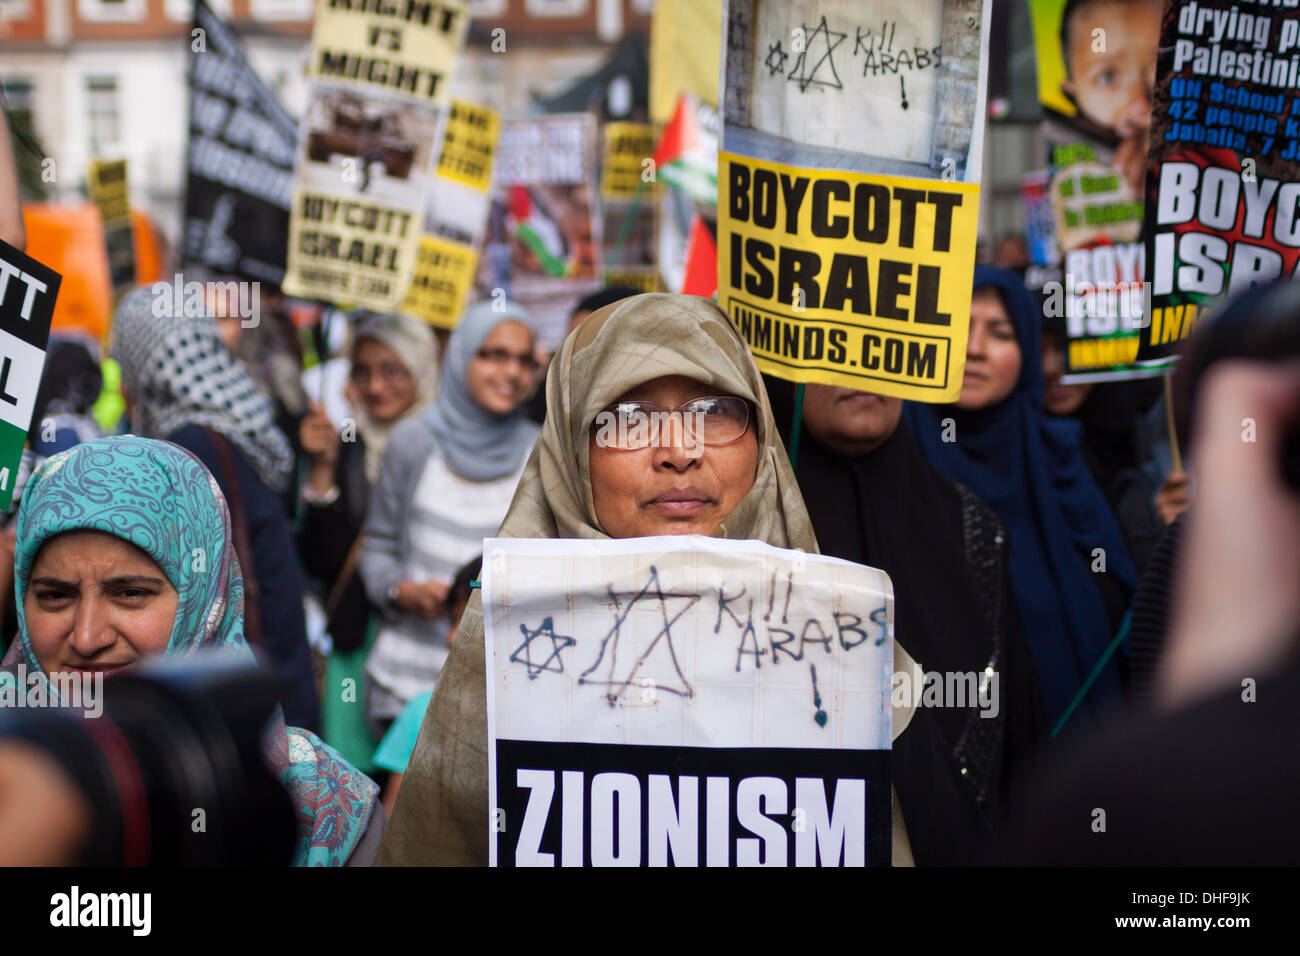 A woman holds a placard at the 2013 Al-Quds day demonstration, London. Al-Quds day is a pro-Palestinian day of protest. - Stock Image